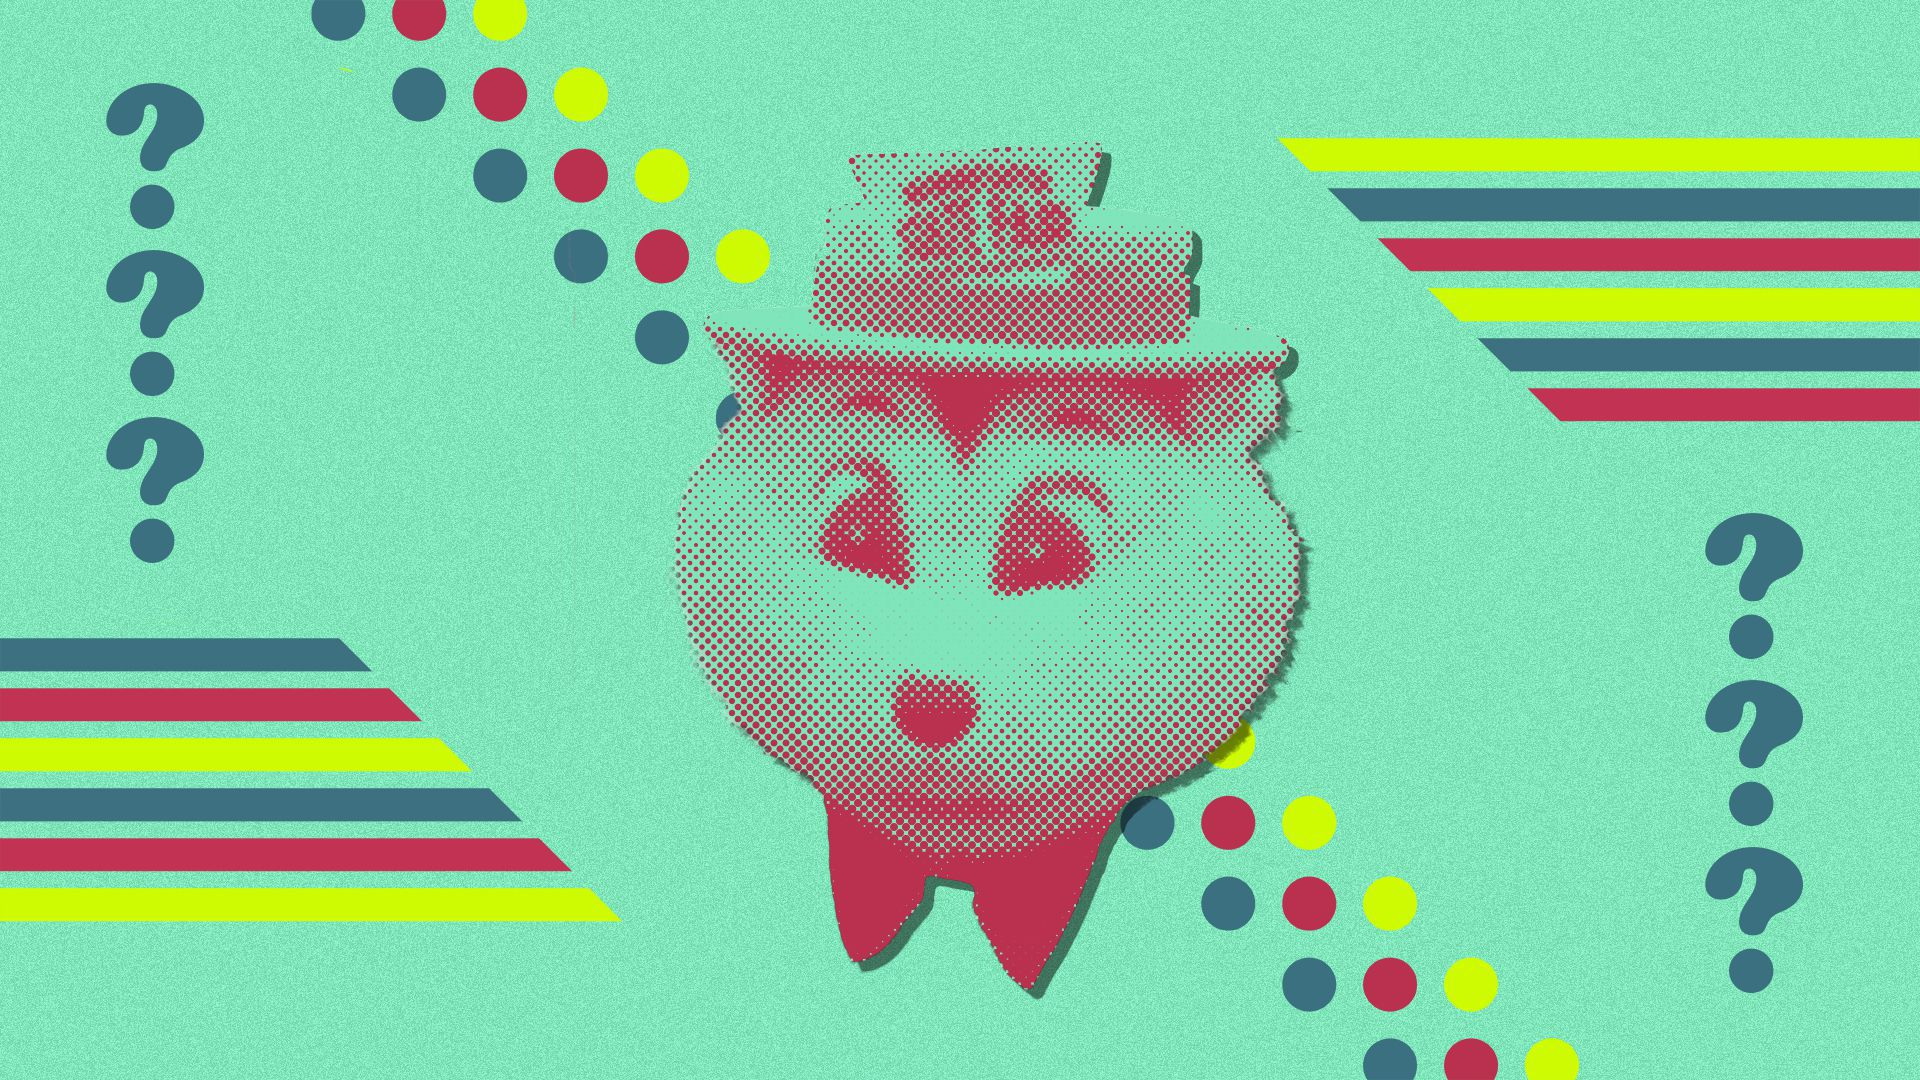 Photo illustration of the Minnesota State Fair's mascot, Fairchild the gopher, with patterns of stripes and dots, and two columns of question marks.